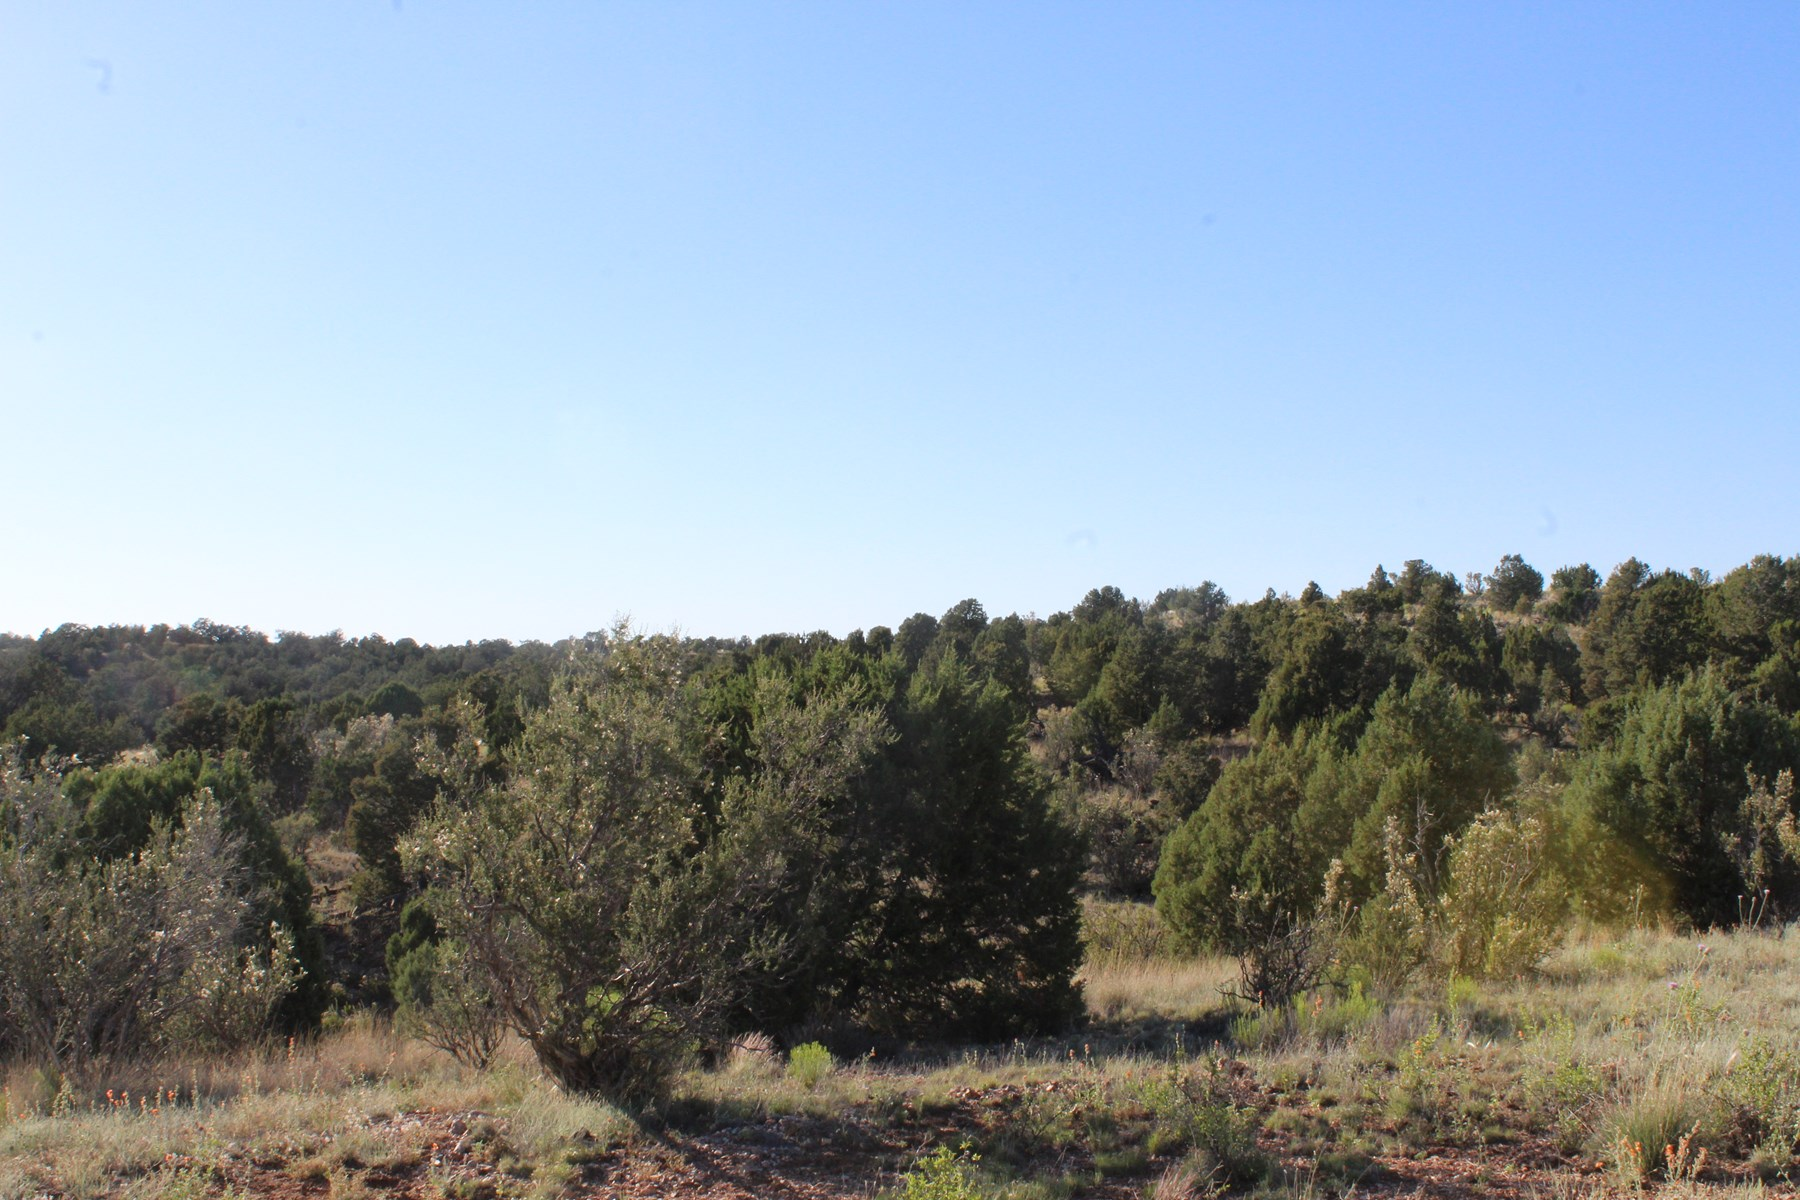 Recreational Land bordering Public Land in Seligman AZ